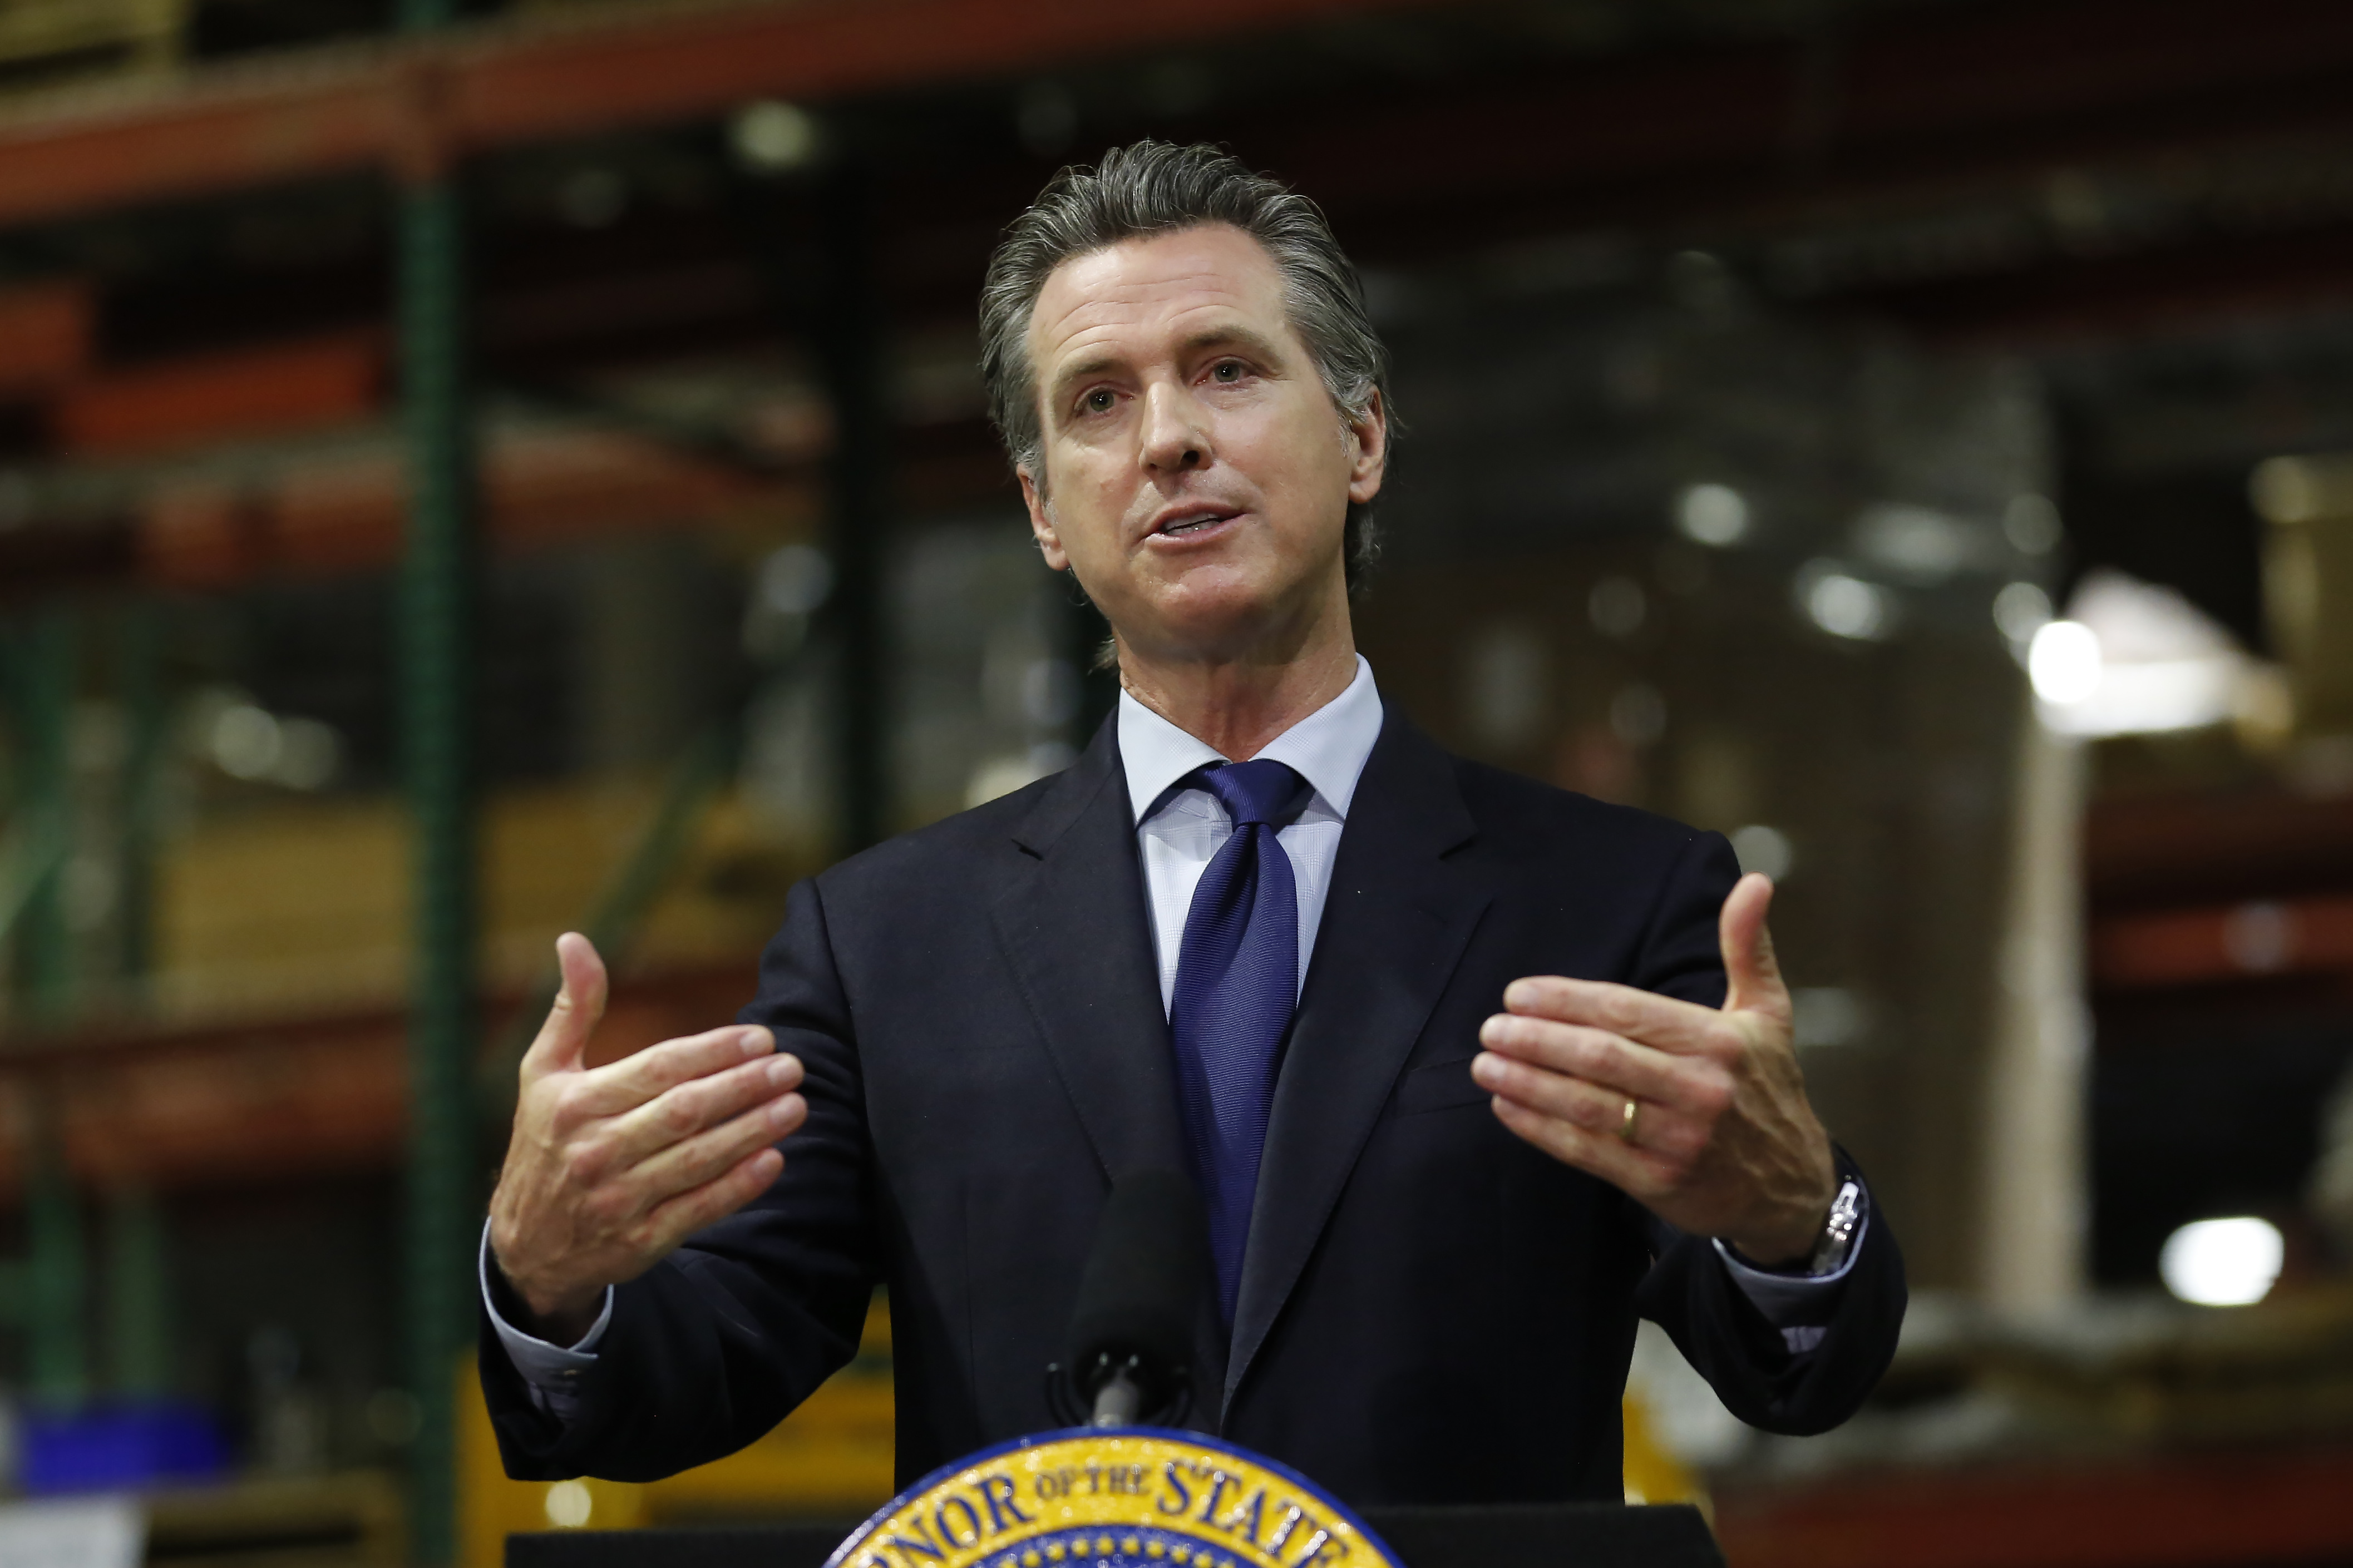 California governor on the hot seat over pandemic response